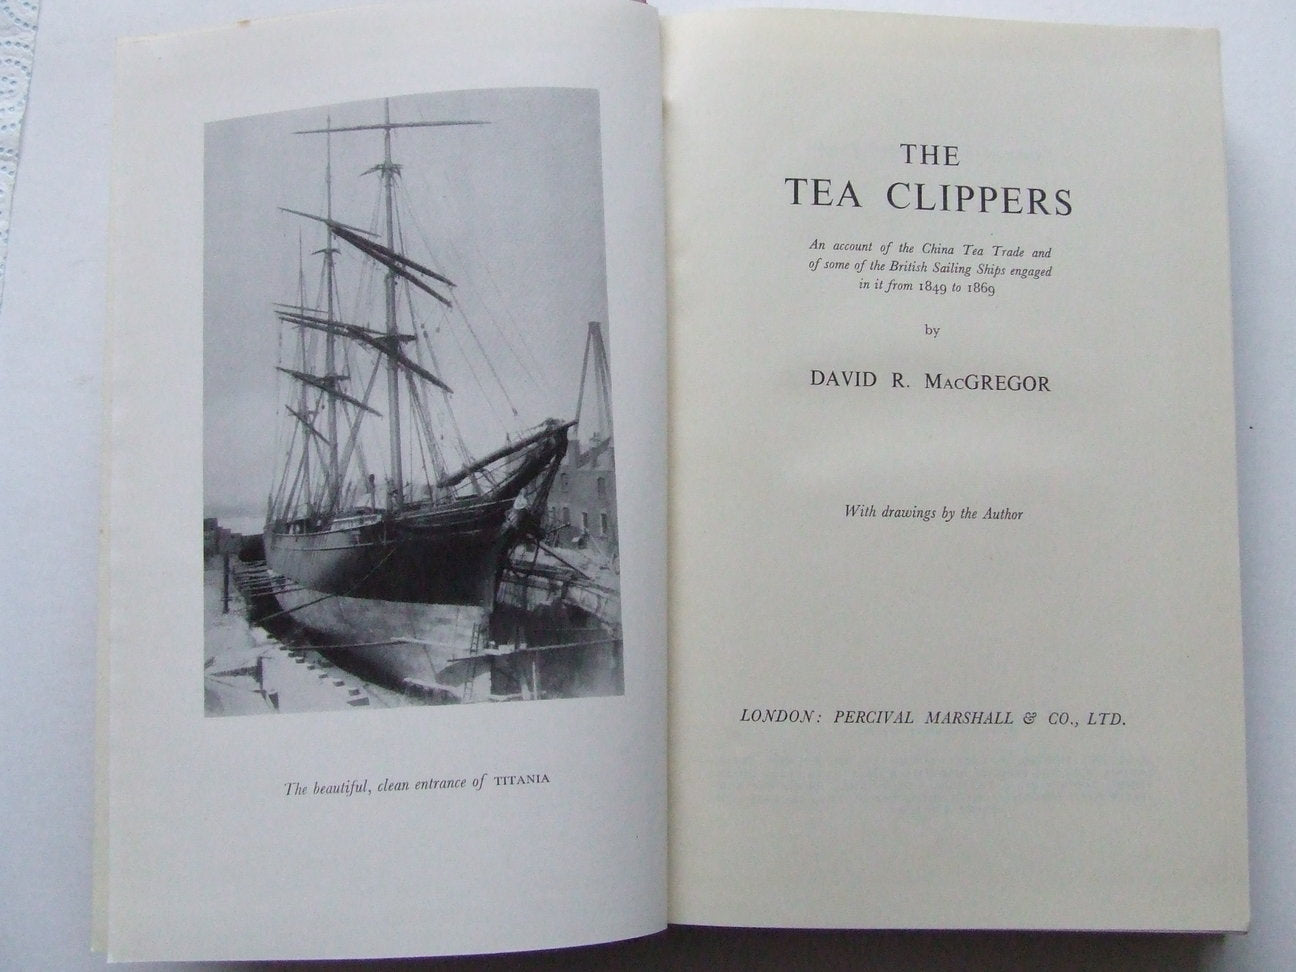 The Tea Clippers